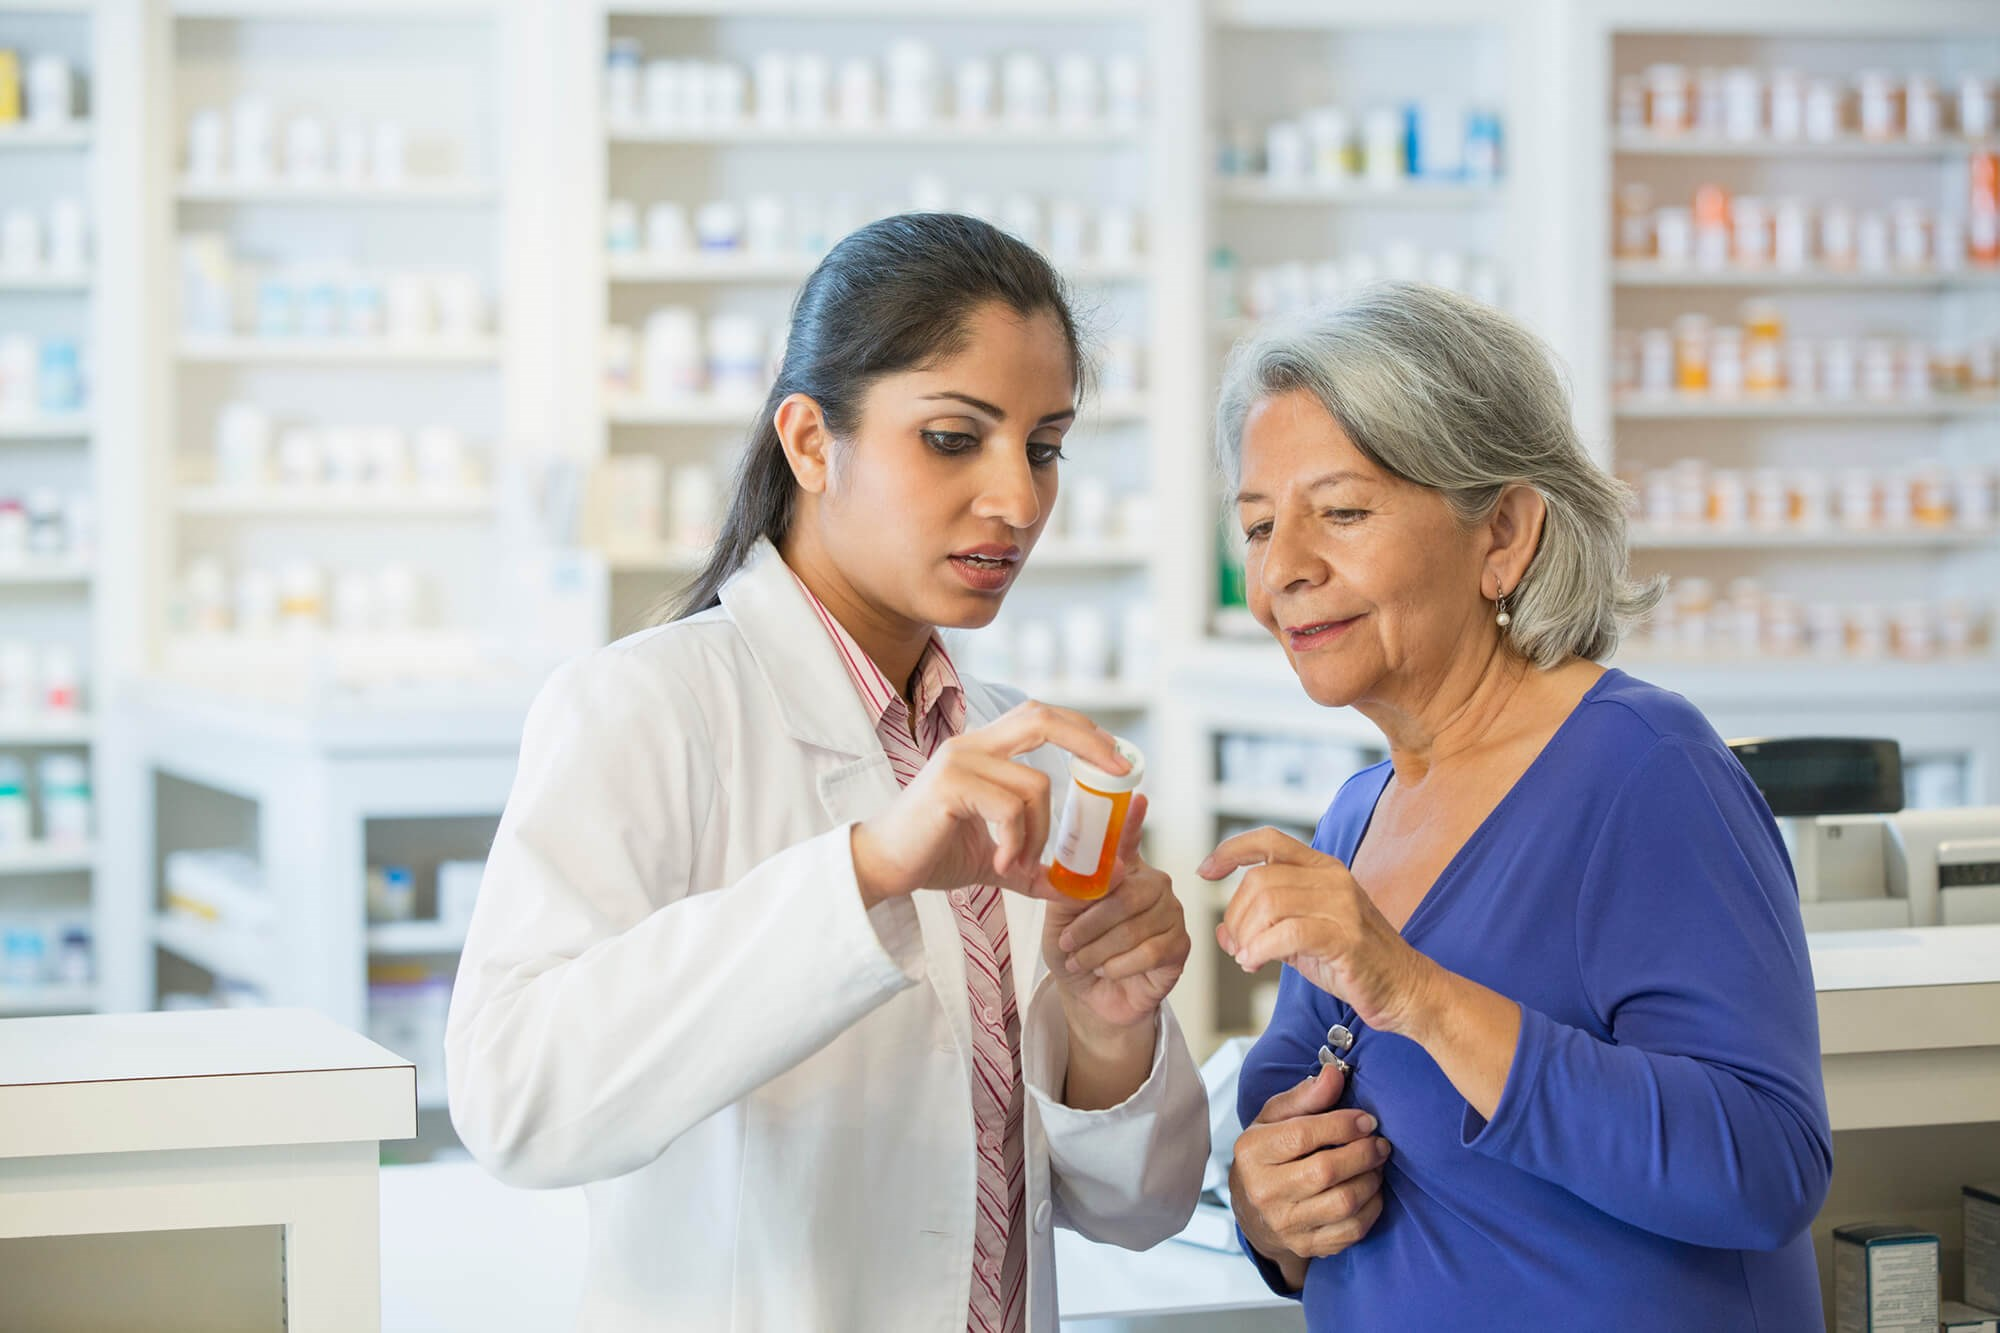 USPSTF Recommends Risk-Reducing Medications for Breast Cancer